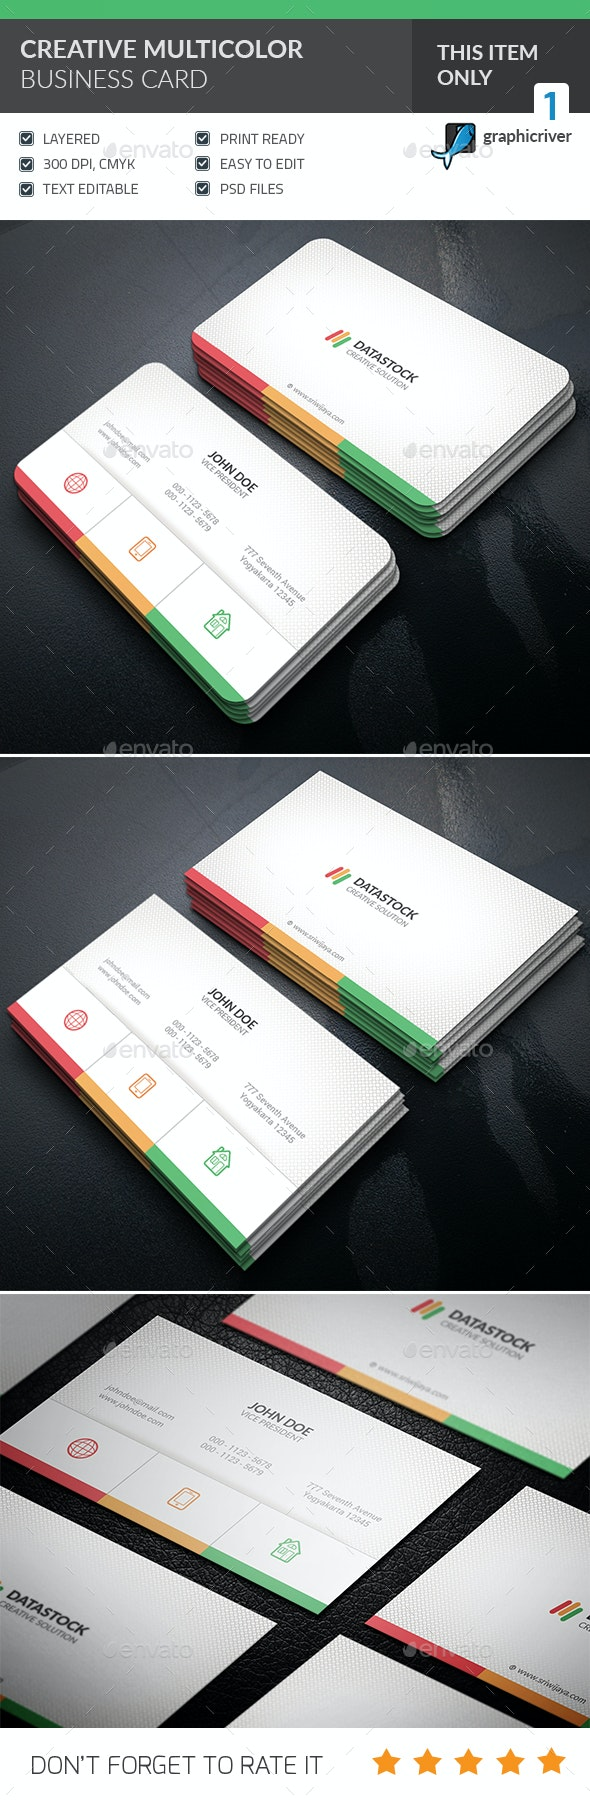 Multicolor Business Card - Corporate Business Cards